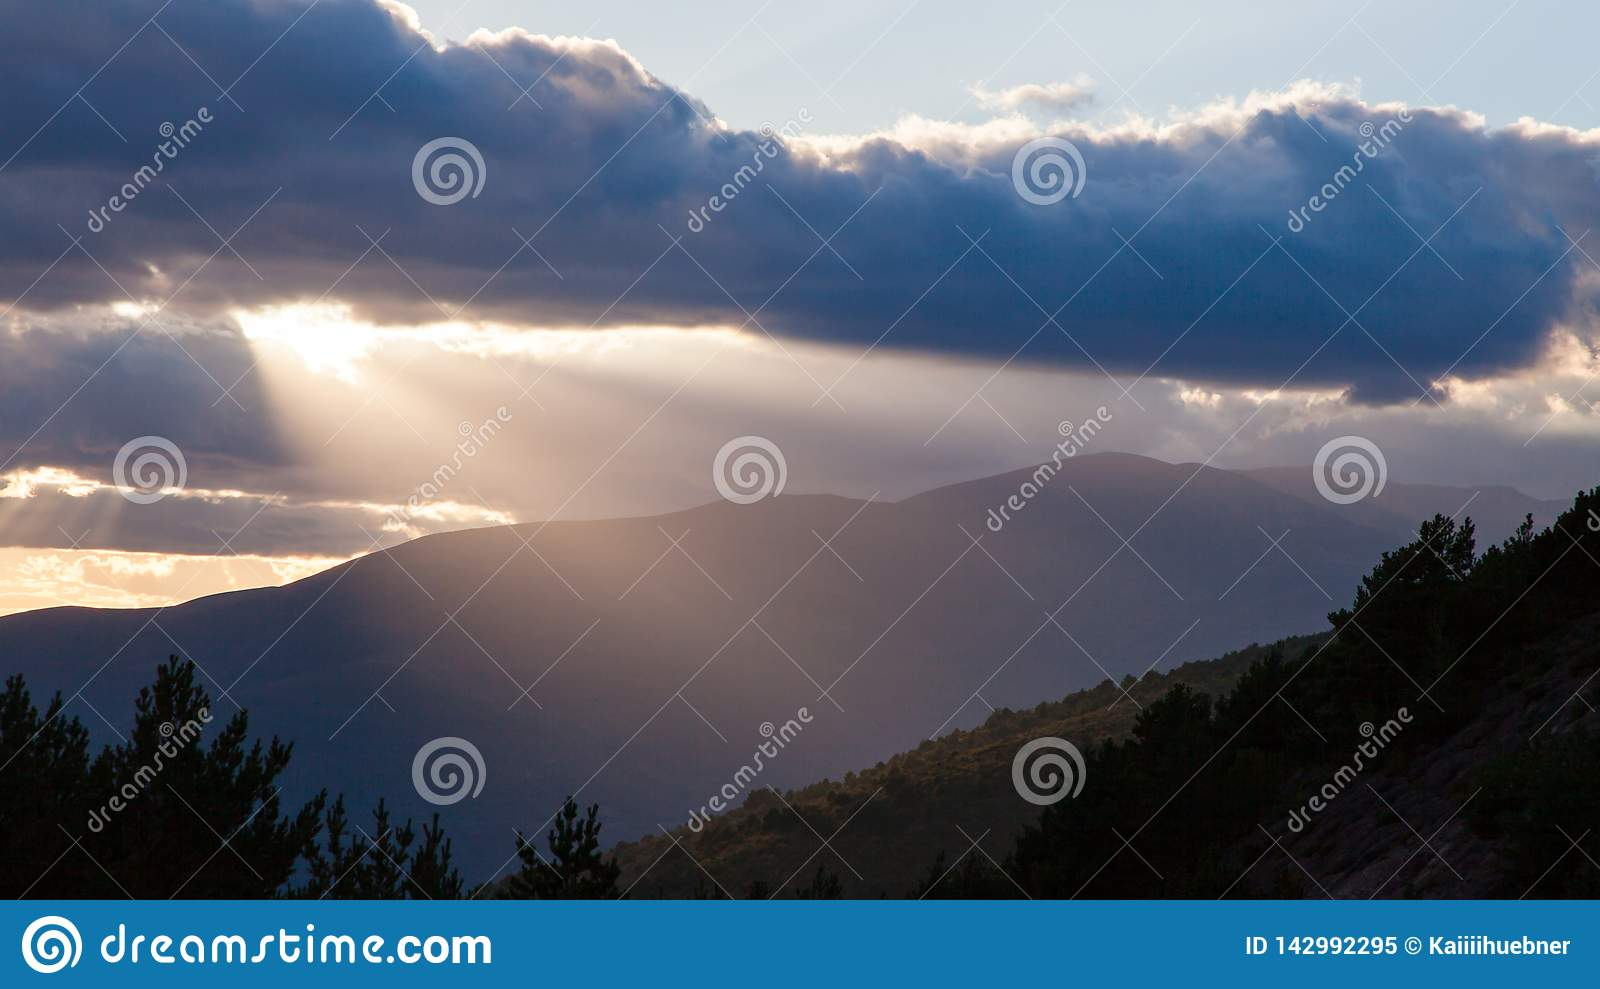 Sun shining through thick clouds over mountains right before sunset.